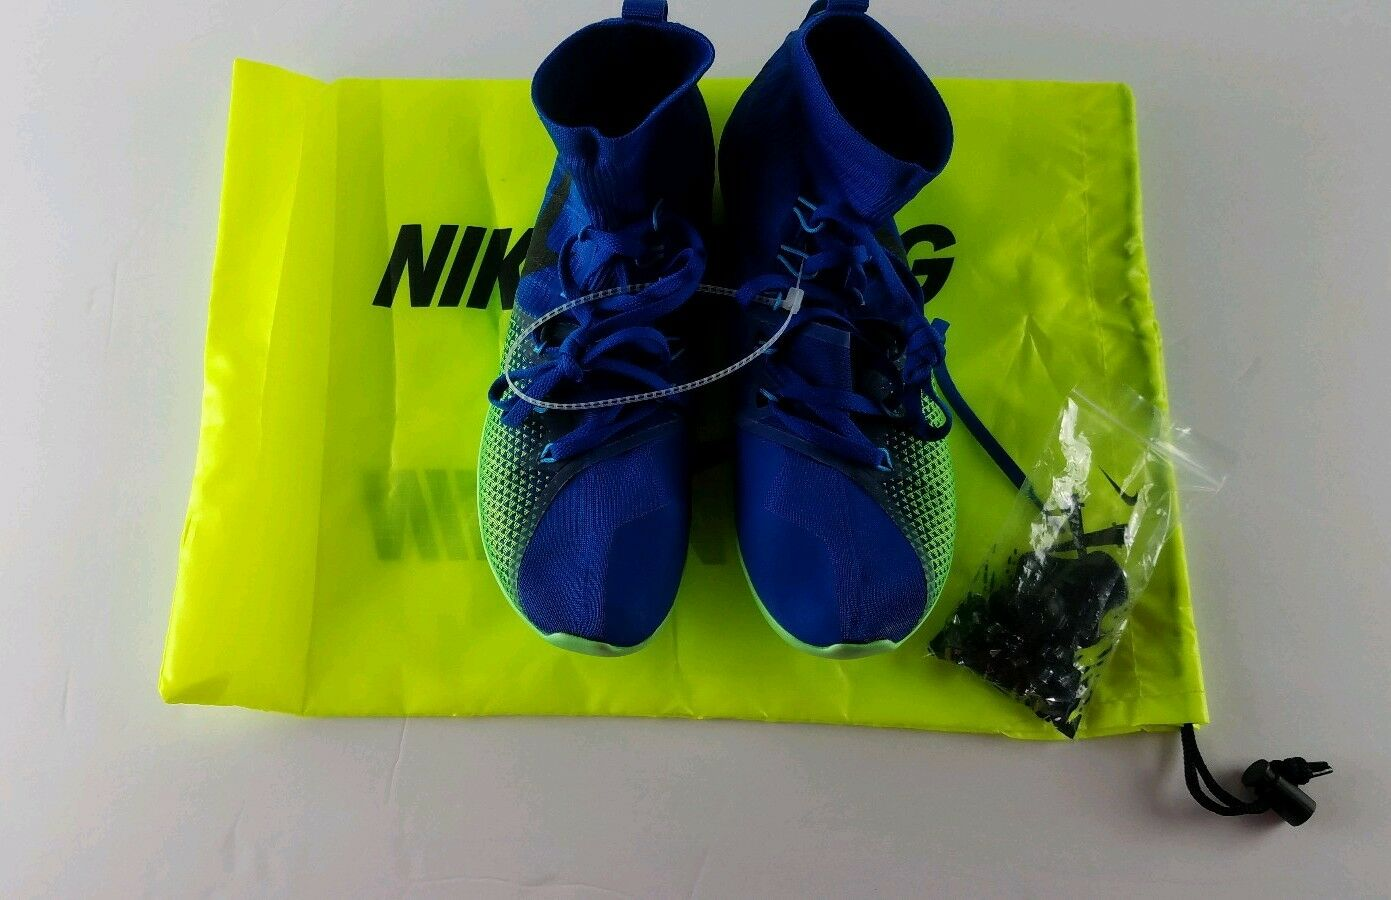 Nike zoom victory waffle 4 XC men's racing shoes bluee and green  volt Size 10.